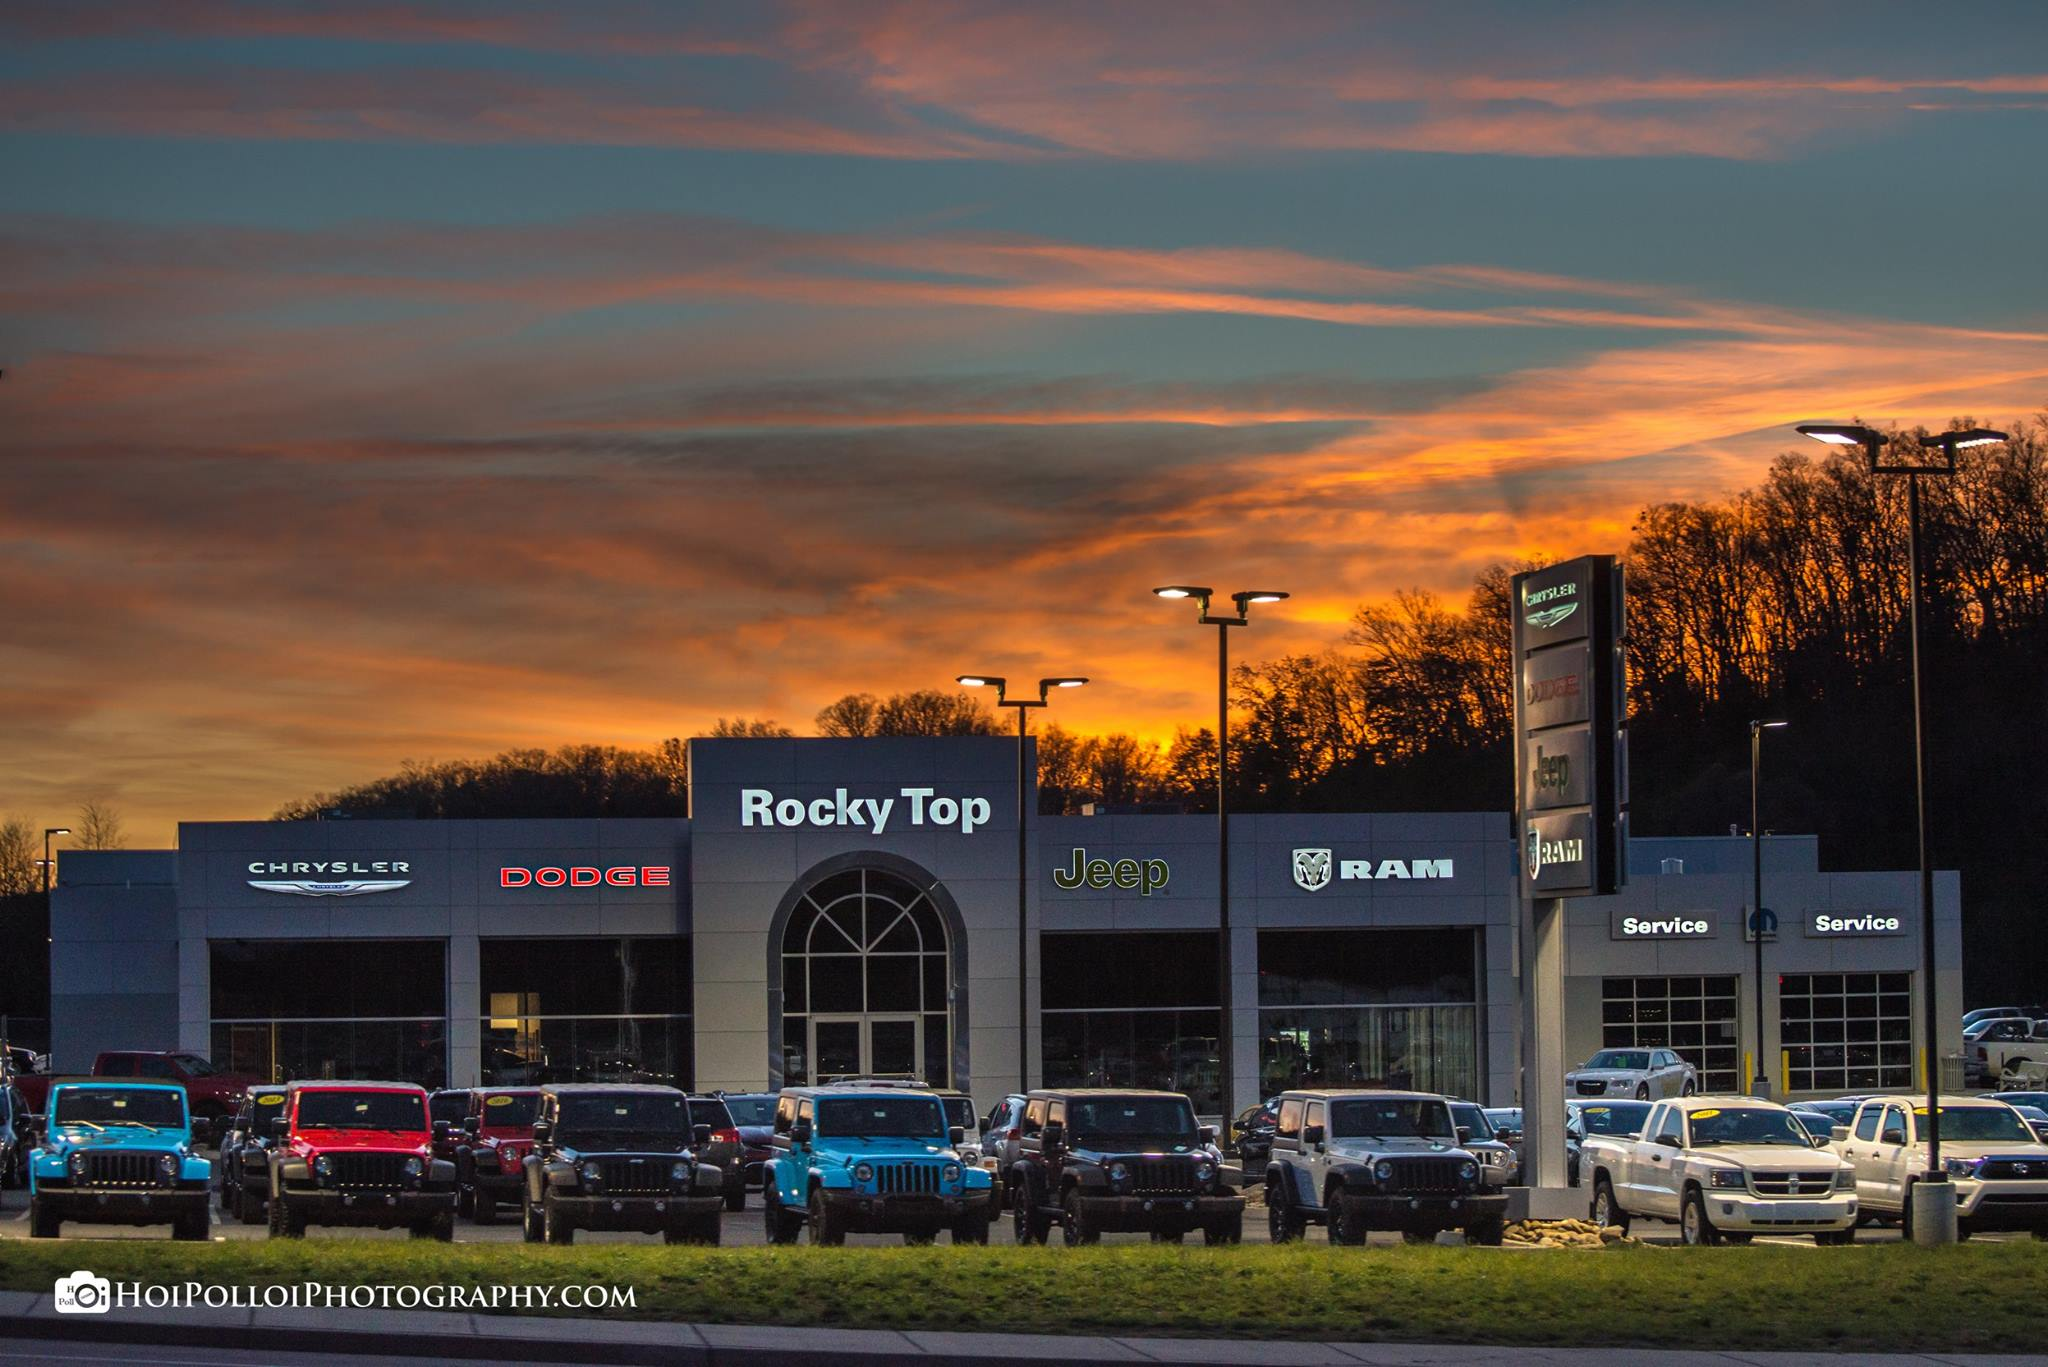 Rocky Top Chrysler Jeep Dodge Is A Full Service Chrysler, Jeep, Dodge, And  Ram Dealership. We Have Been A Part Of The Sevierville Kodak Area For Many  Years ...